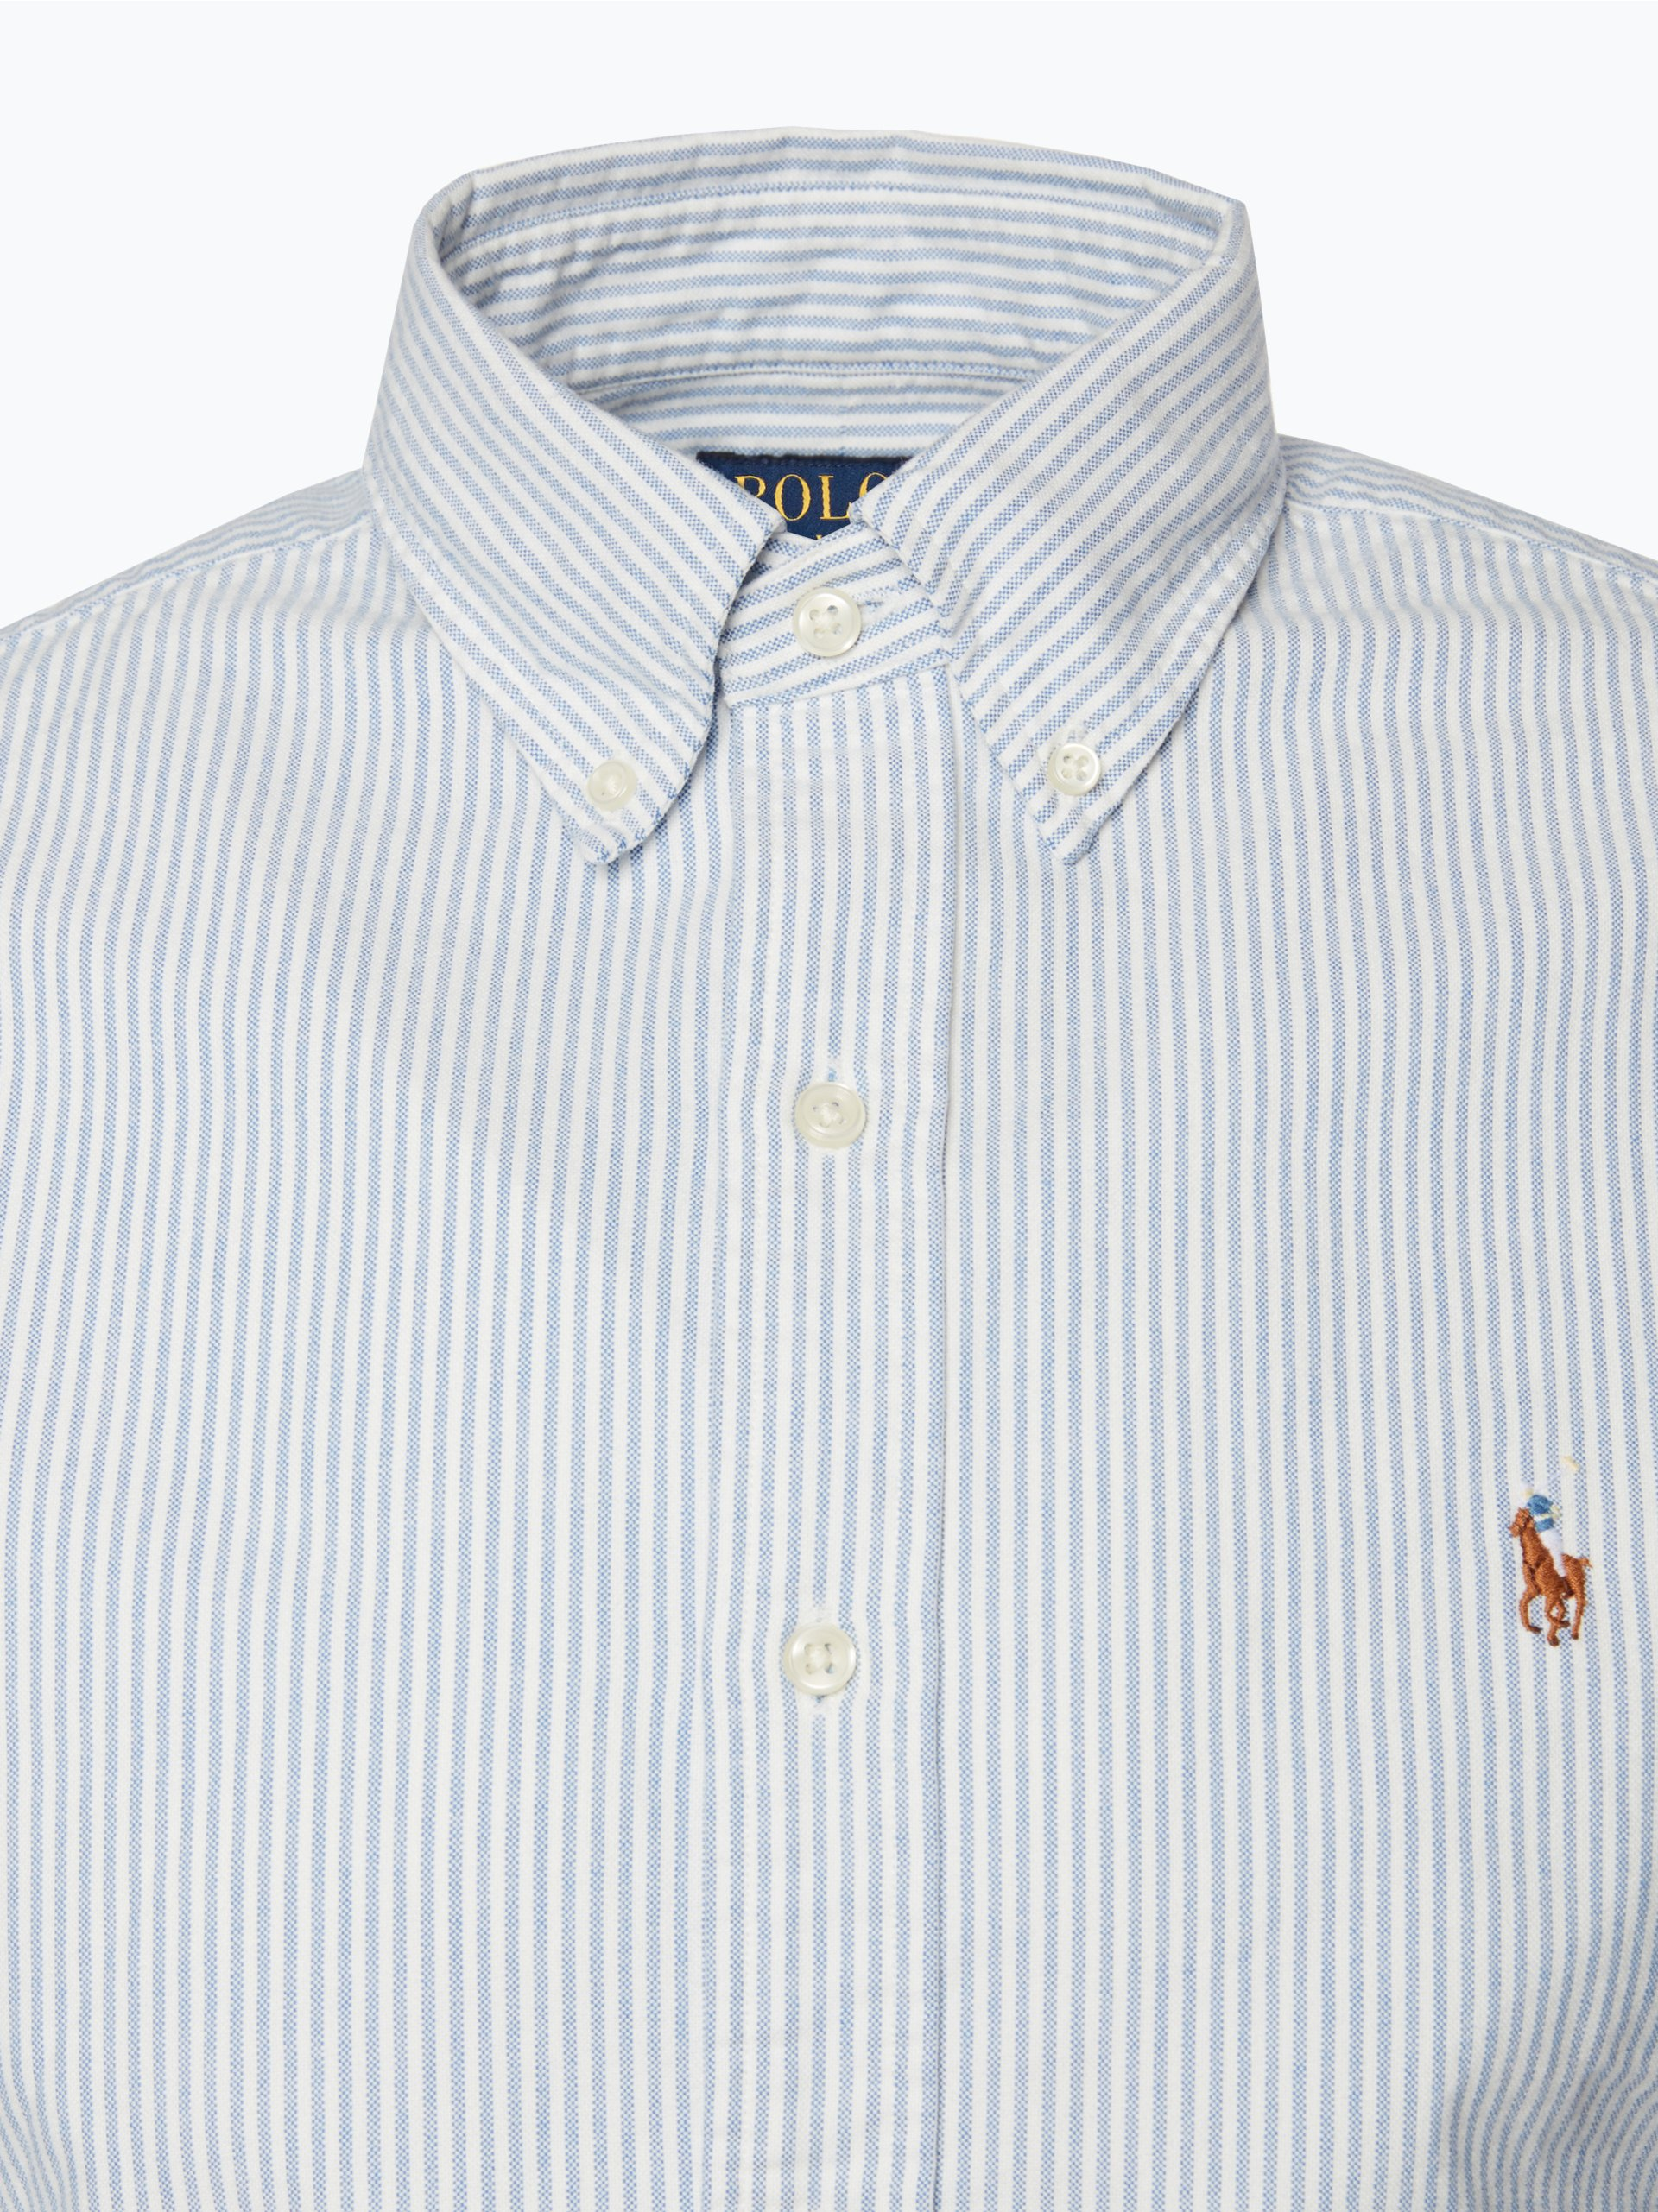 Polo Ralph Lauren Herren Hemd Slim Fit